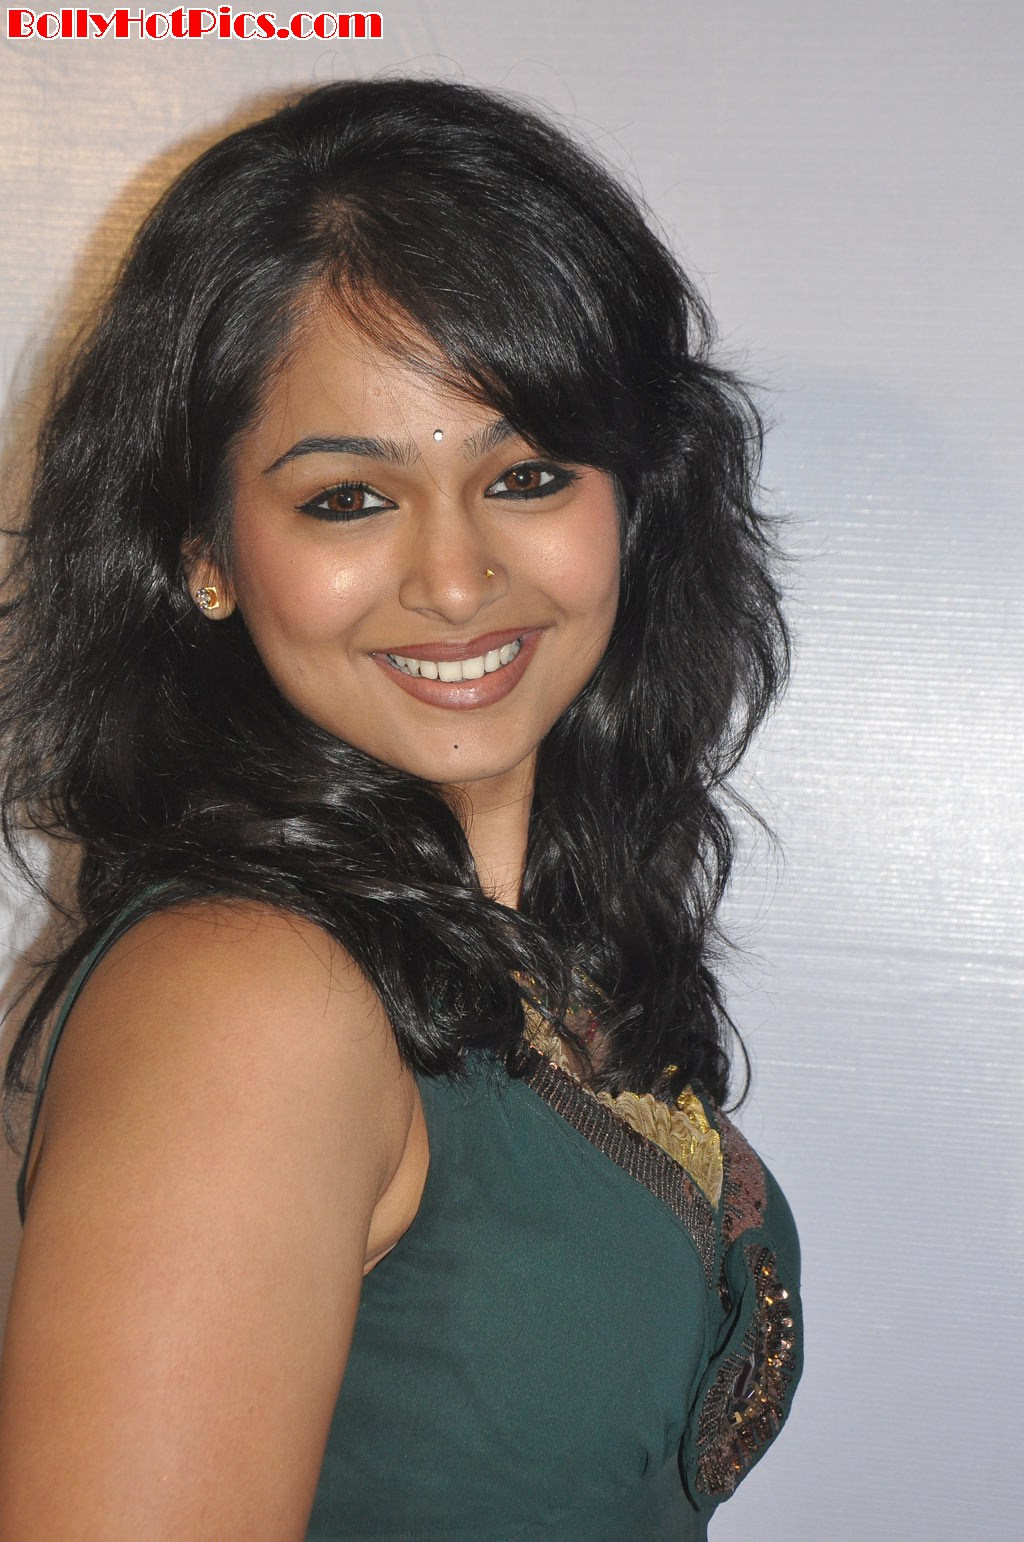 http://2.bp.blogspot.com/-dflgIsXtjds/UC_0NPwQBJI/AAAAAAAAchs/_BTgPNMaDQs/s1600/akilan-movie-audio-launch-10.jpg